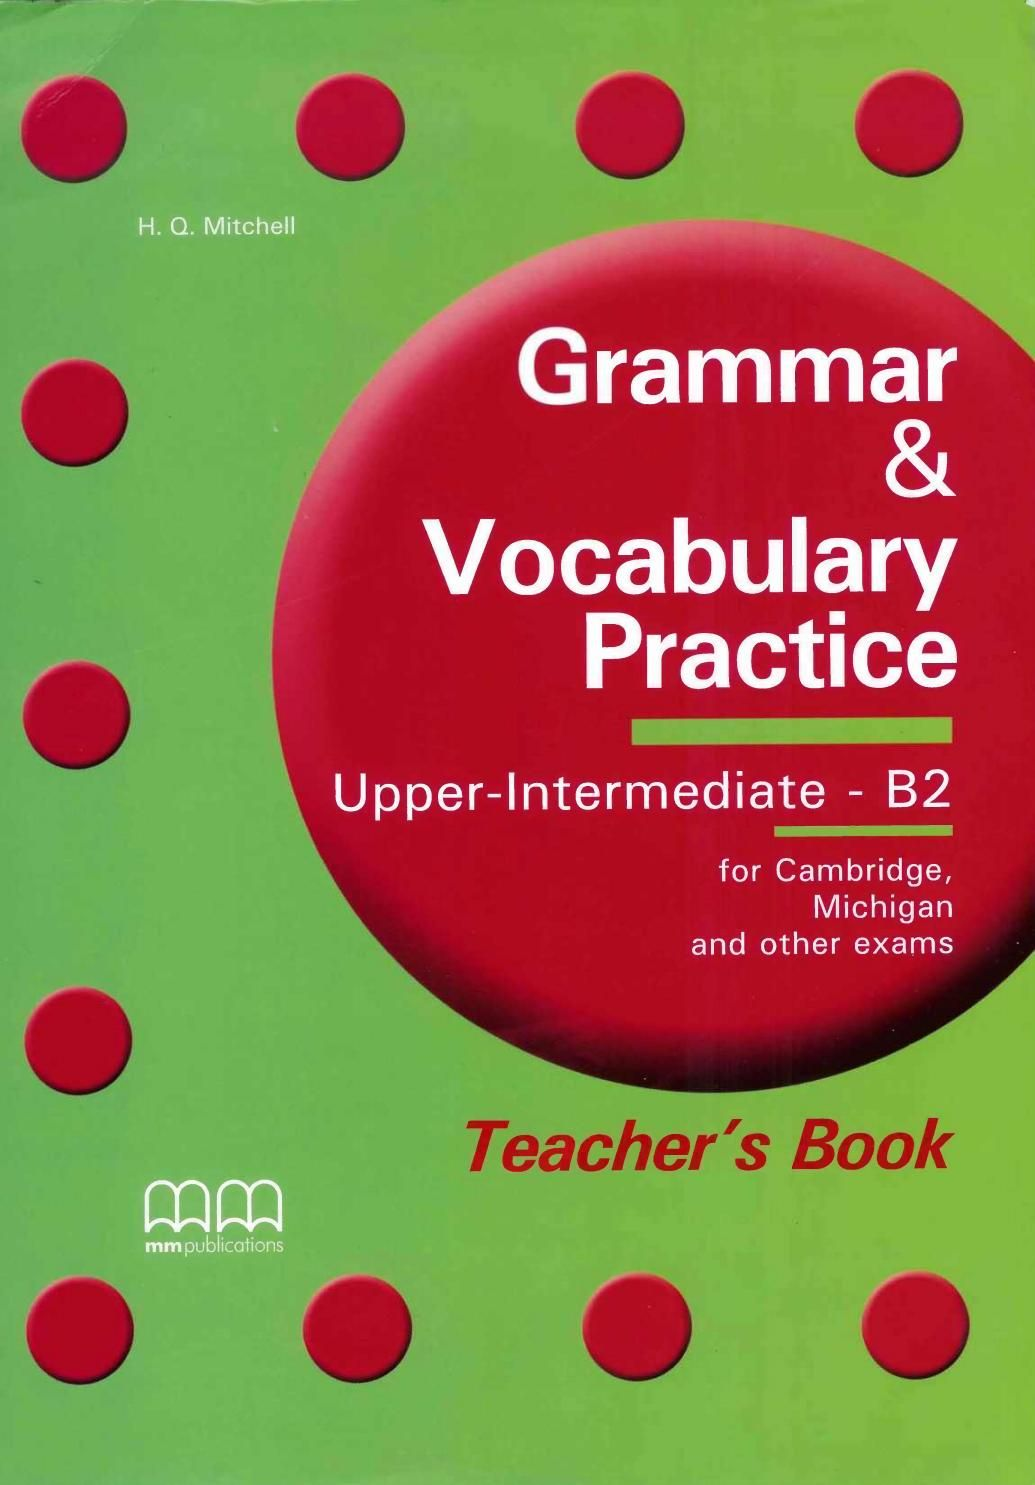 grammar and vocabulary practice upper intermediate b2 teacher's book pdf